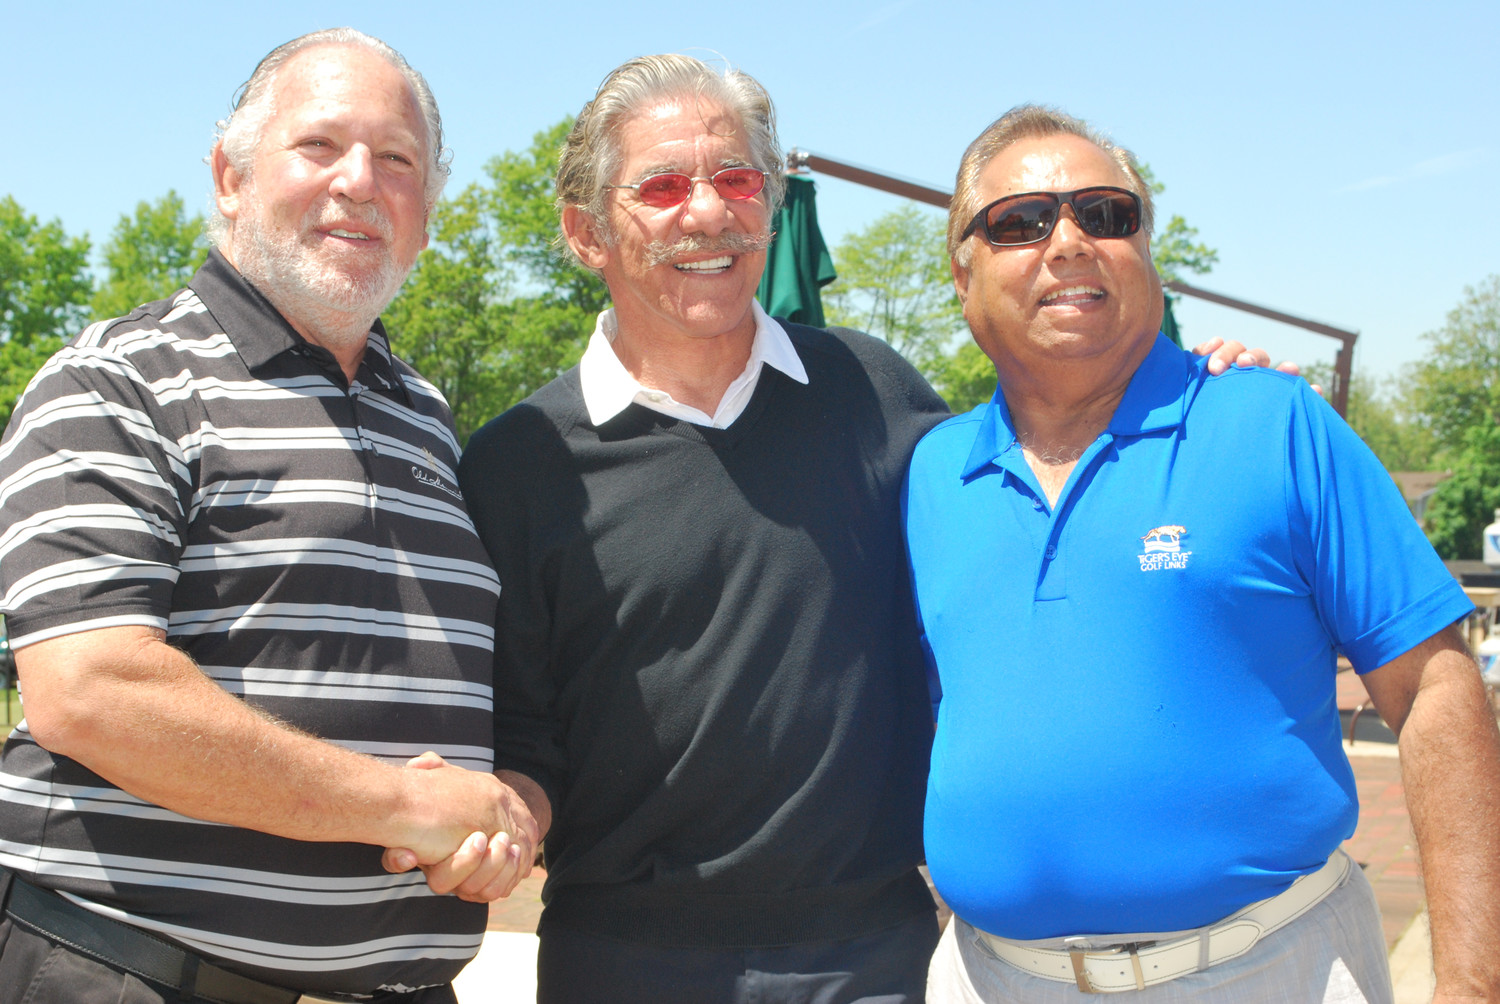 Life's WORC held its 31st annual Geraldo Rivera Golf Classic at the Seawane Club on May 24. From left Guest of Honor Barry Koff, Rivera and Guest of Honor Tariq Khan.